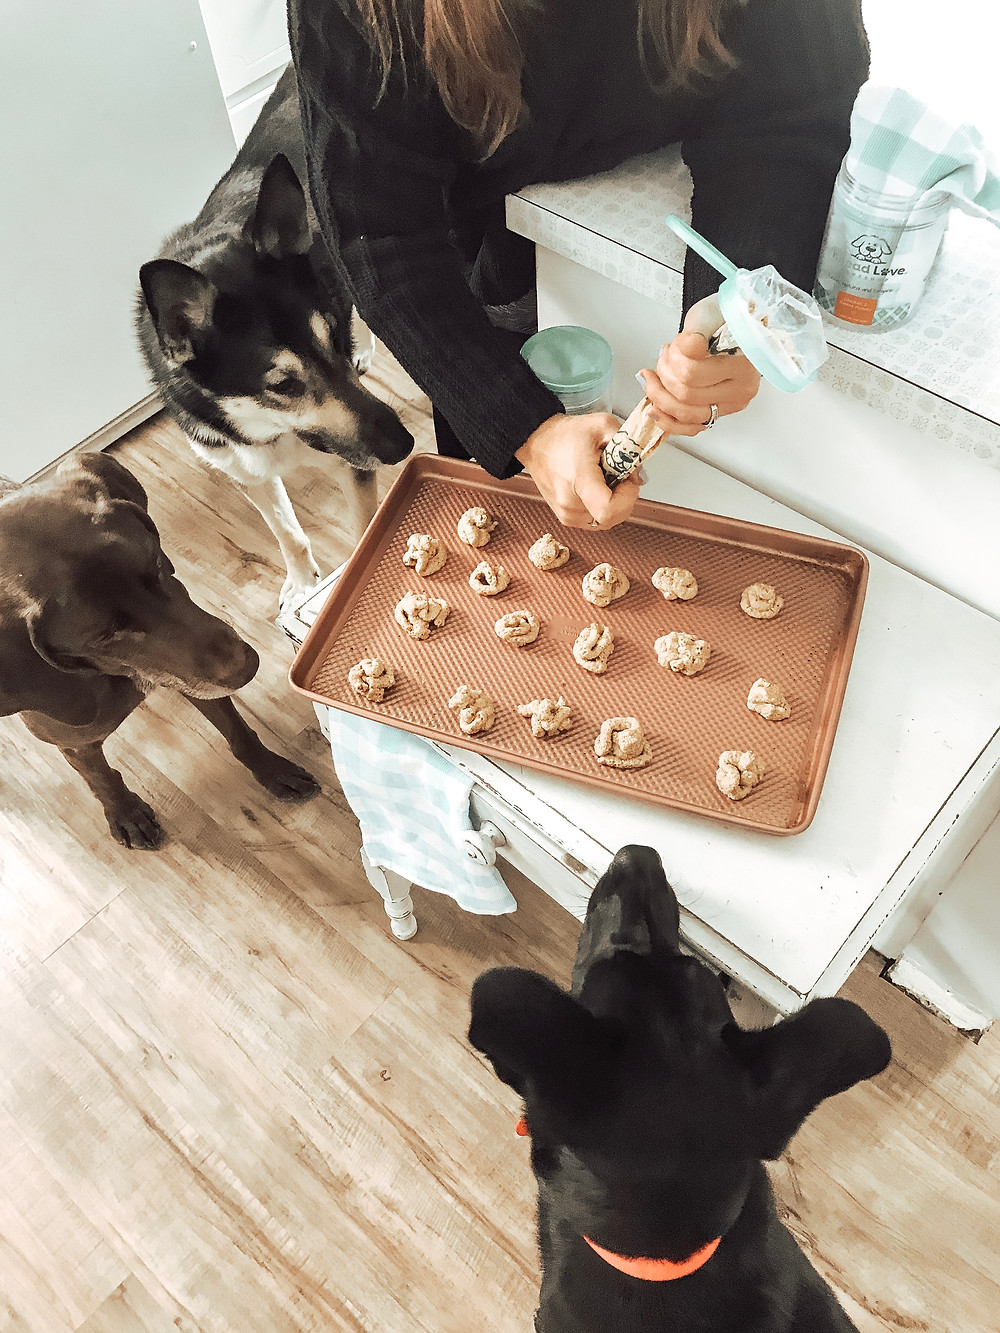 Bake at home dog treats